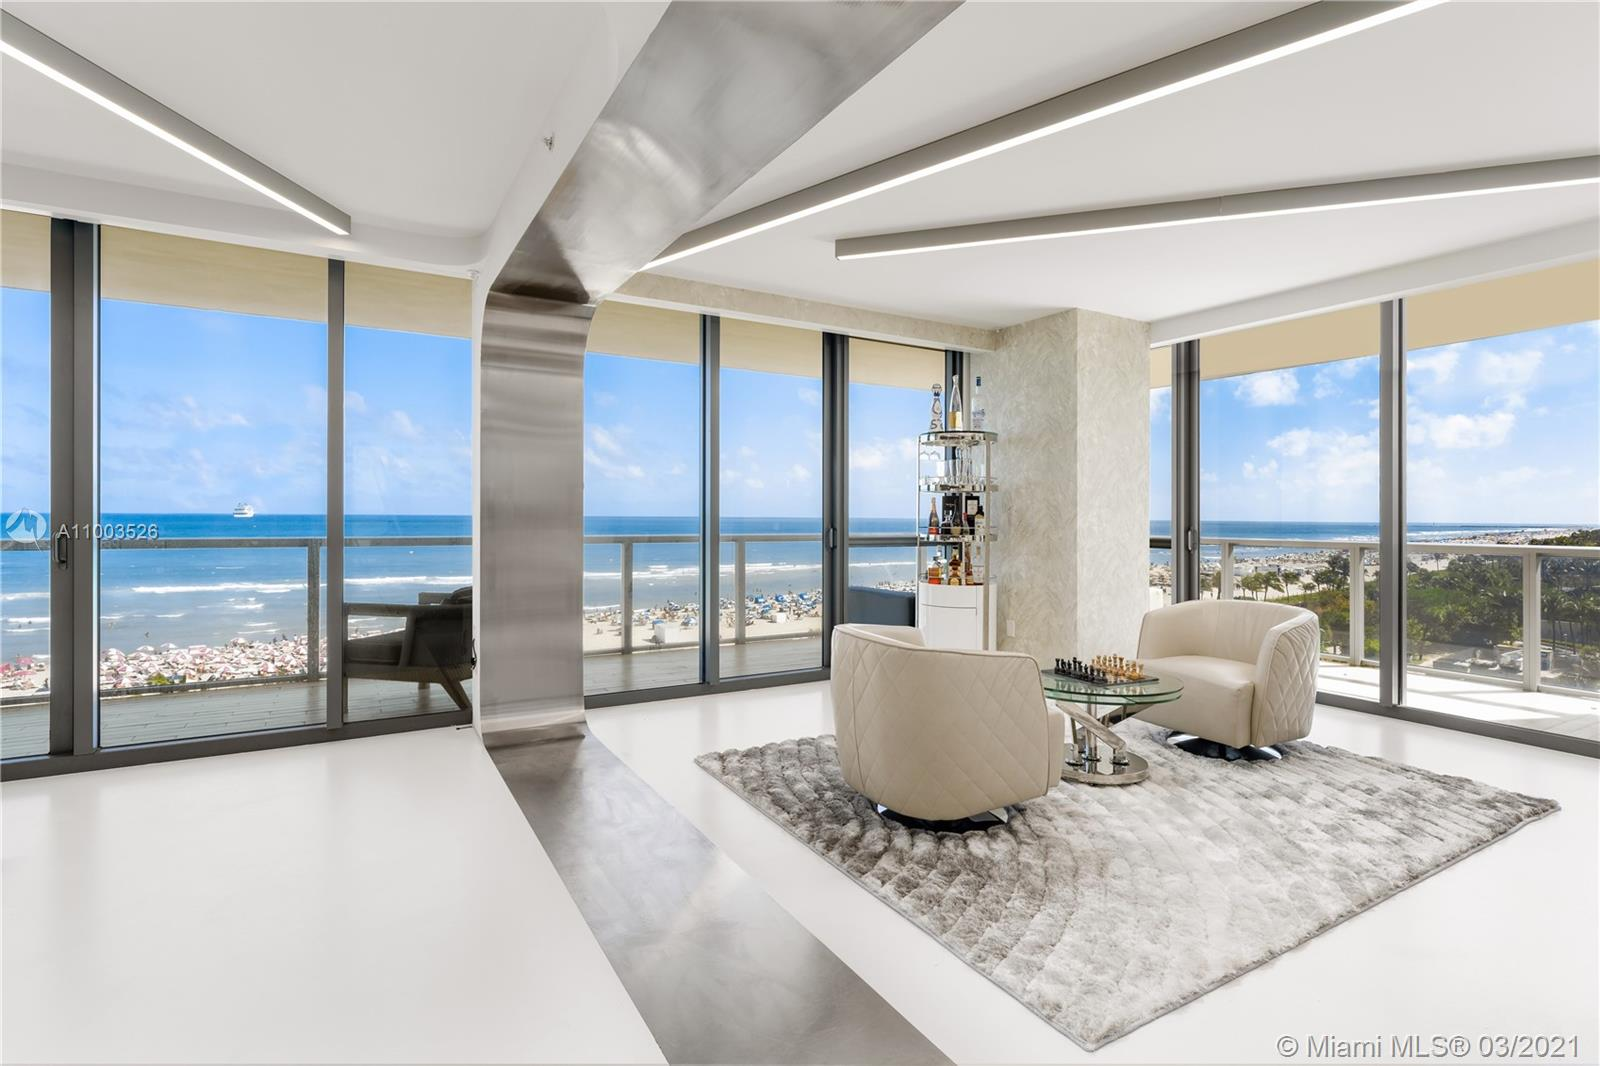 Welcome to the personal home of late architect, Zaha Hadid. Located at world famous W South Beach, this stunningly crafted combined residence is situated on the SE corner providing endless views of the Atlantic Ocean and South Beach. Live in a truly one-of-a-kind direct oceanfront residence personally designed by Zaha Hadid, a pioneering Pritzker winning architect know for her innovative and groundbreaking craftsmanship. This home also has an adjoining guest suite with its own privacy lock-out door, perfect for in-laws! The W South Beach just completed a $30 million renovation, and provides a truly luxurious experience with world renowned amenities. Close to all that South Beach has to offer!